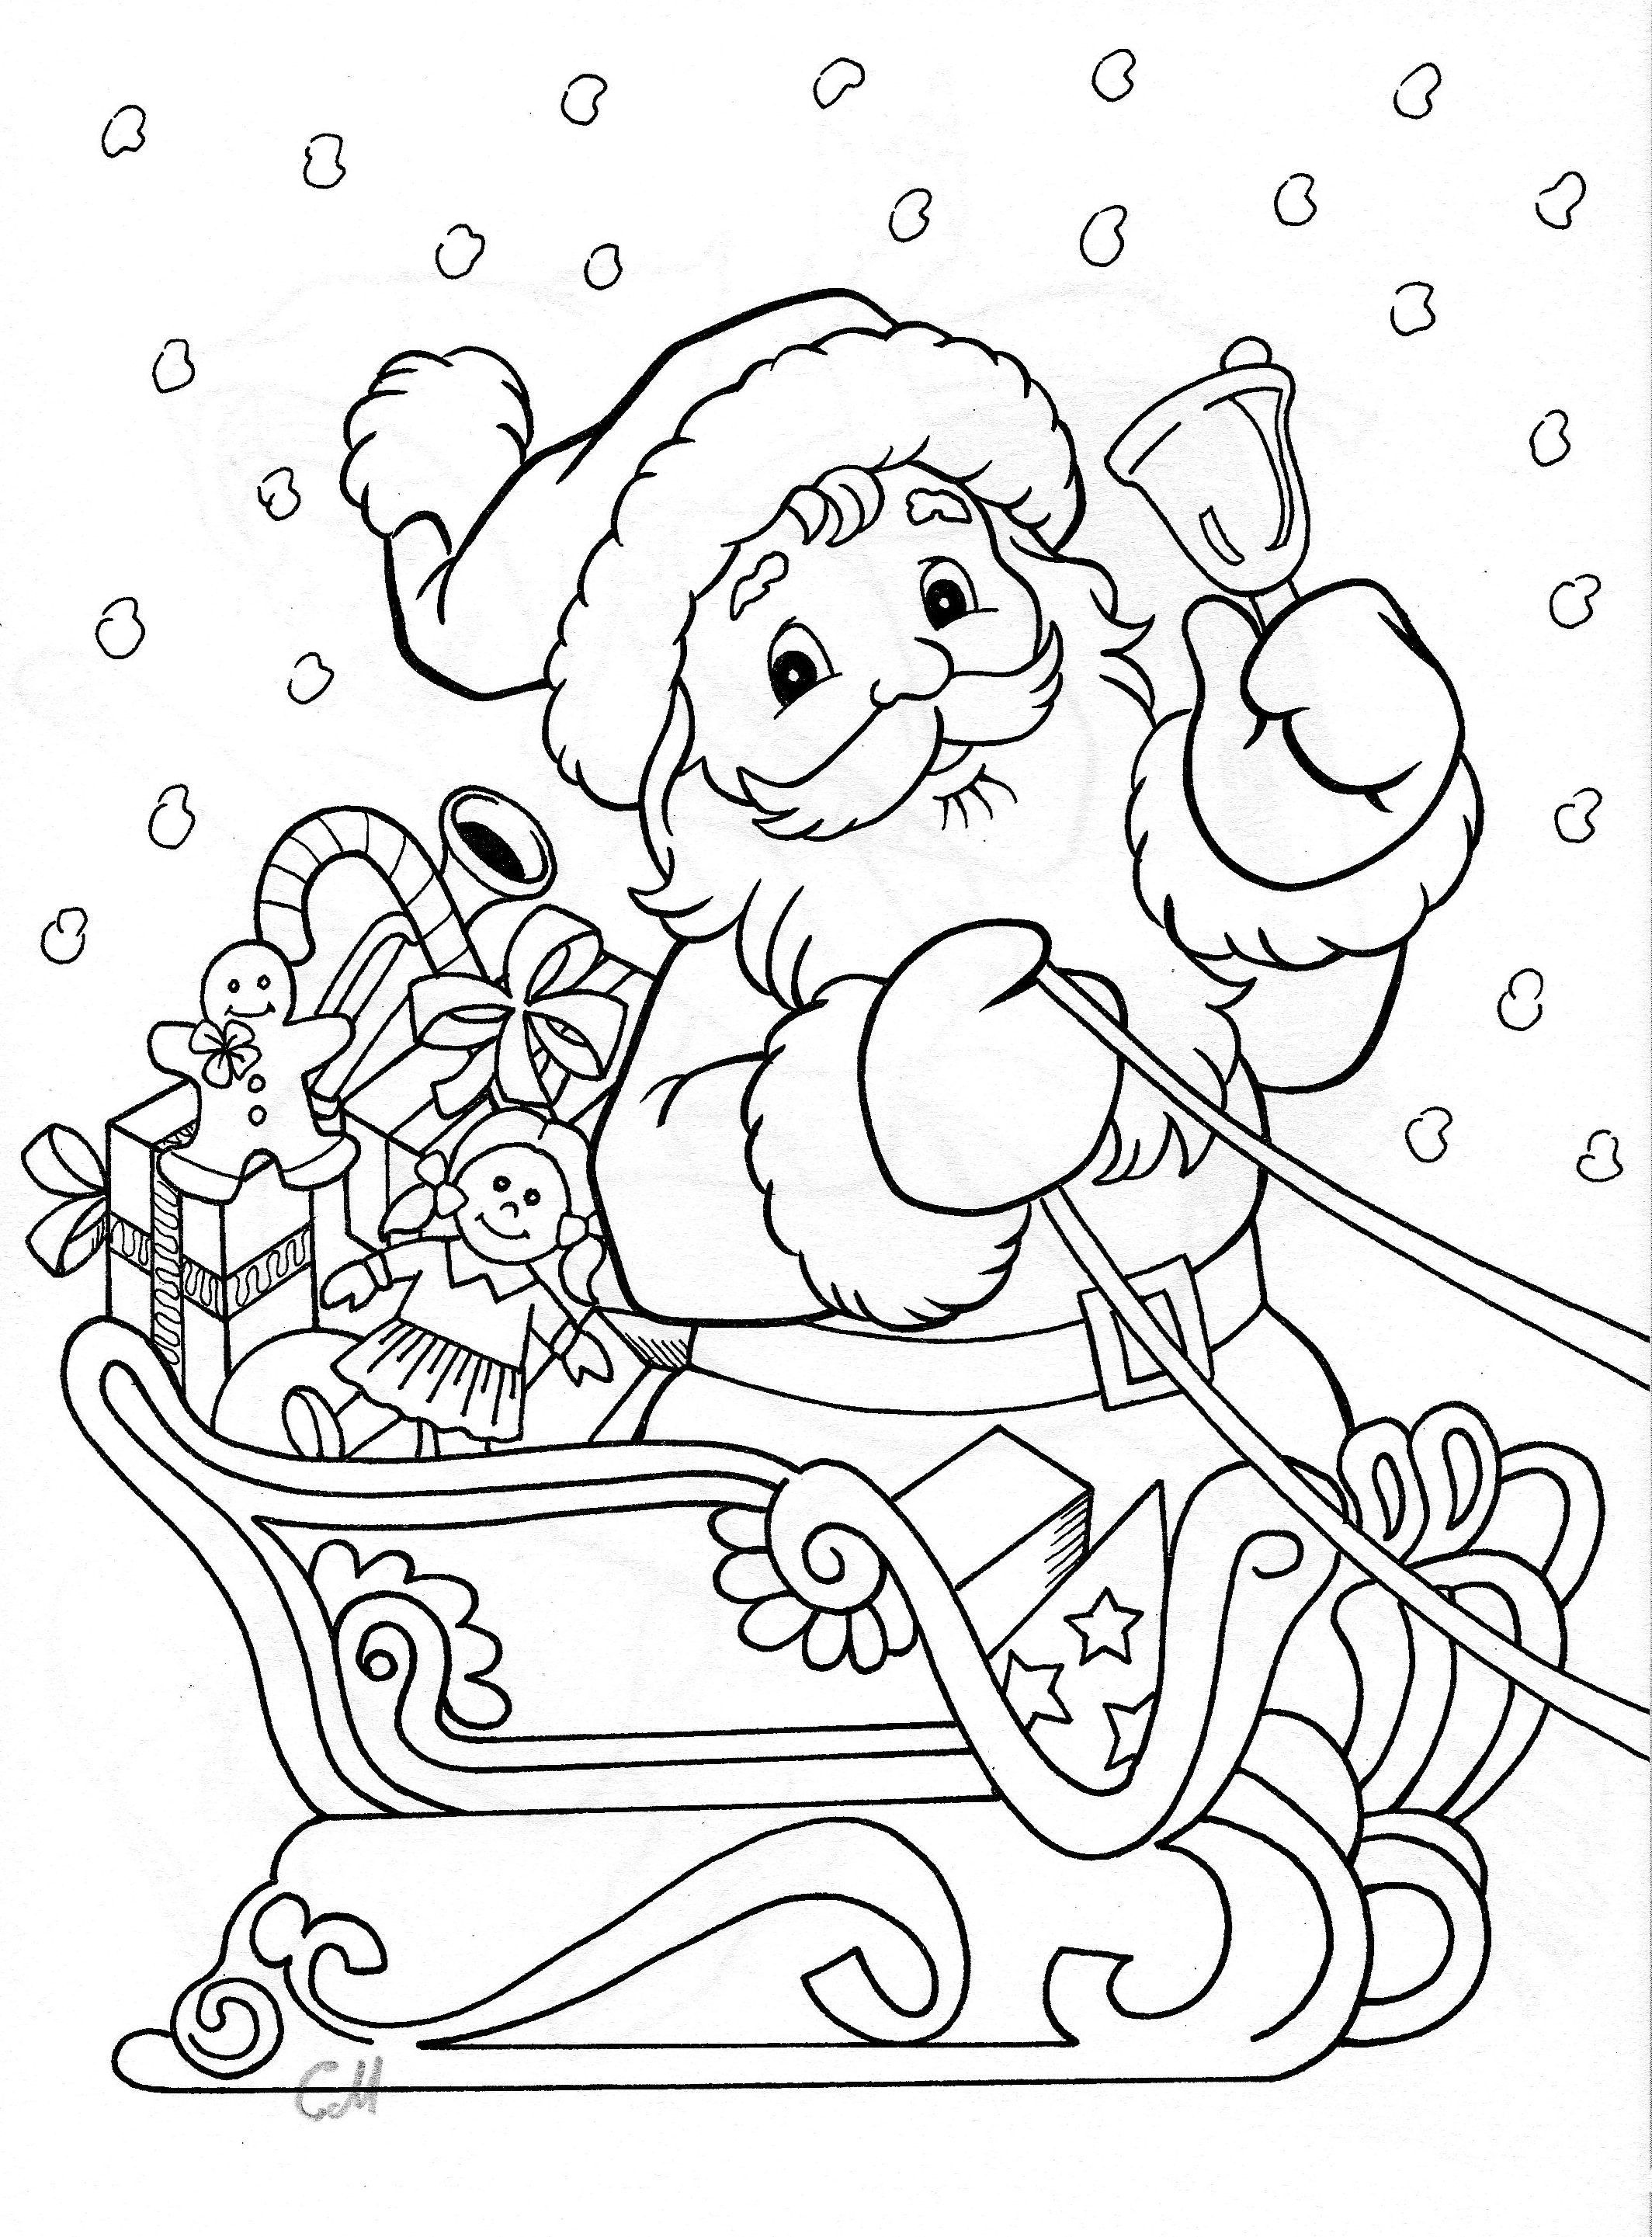 coloring page for Christmas - Santa Claus | Coloring pages ...